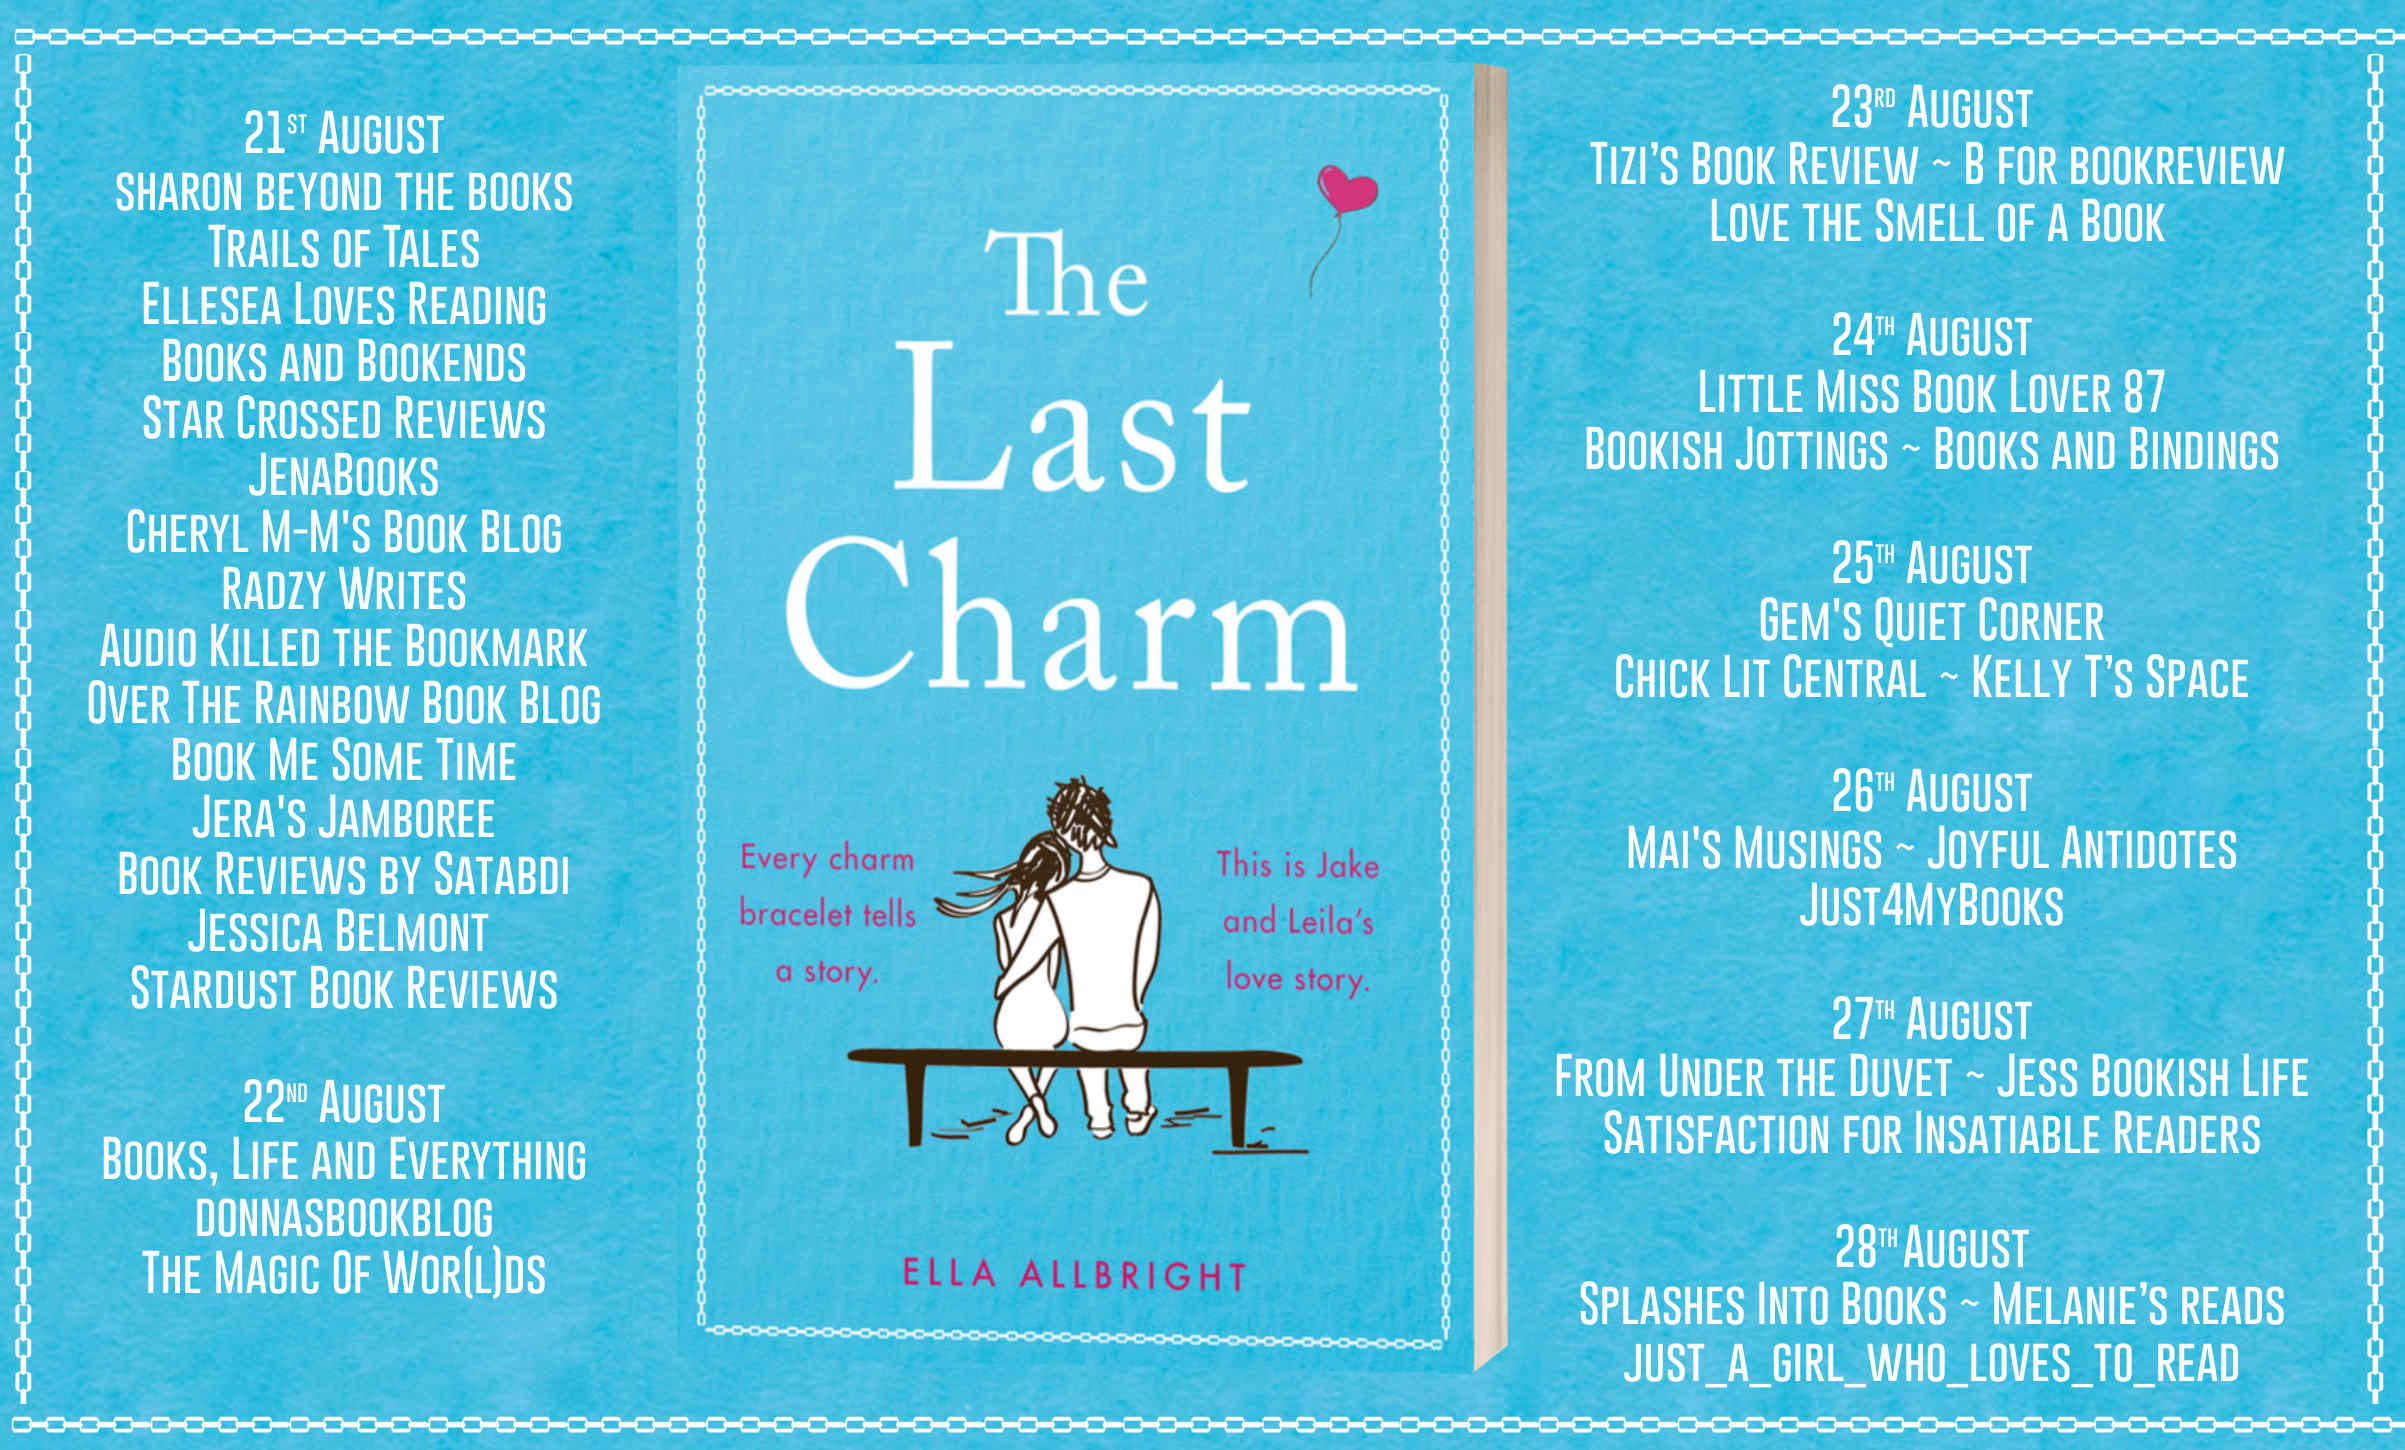 Blog Tour Review: The Last Charm